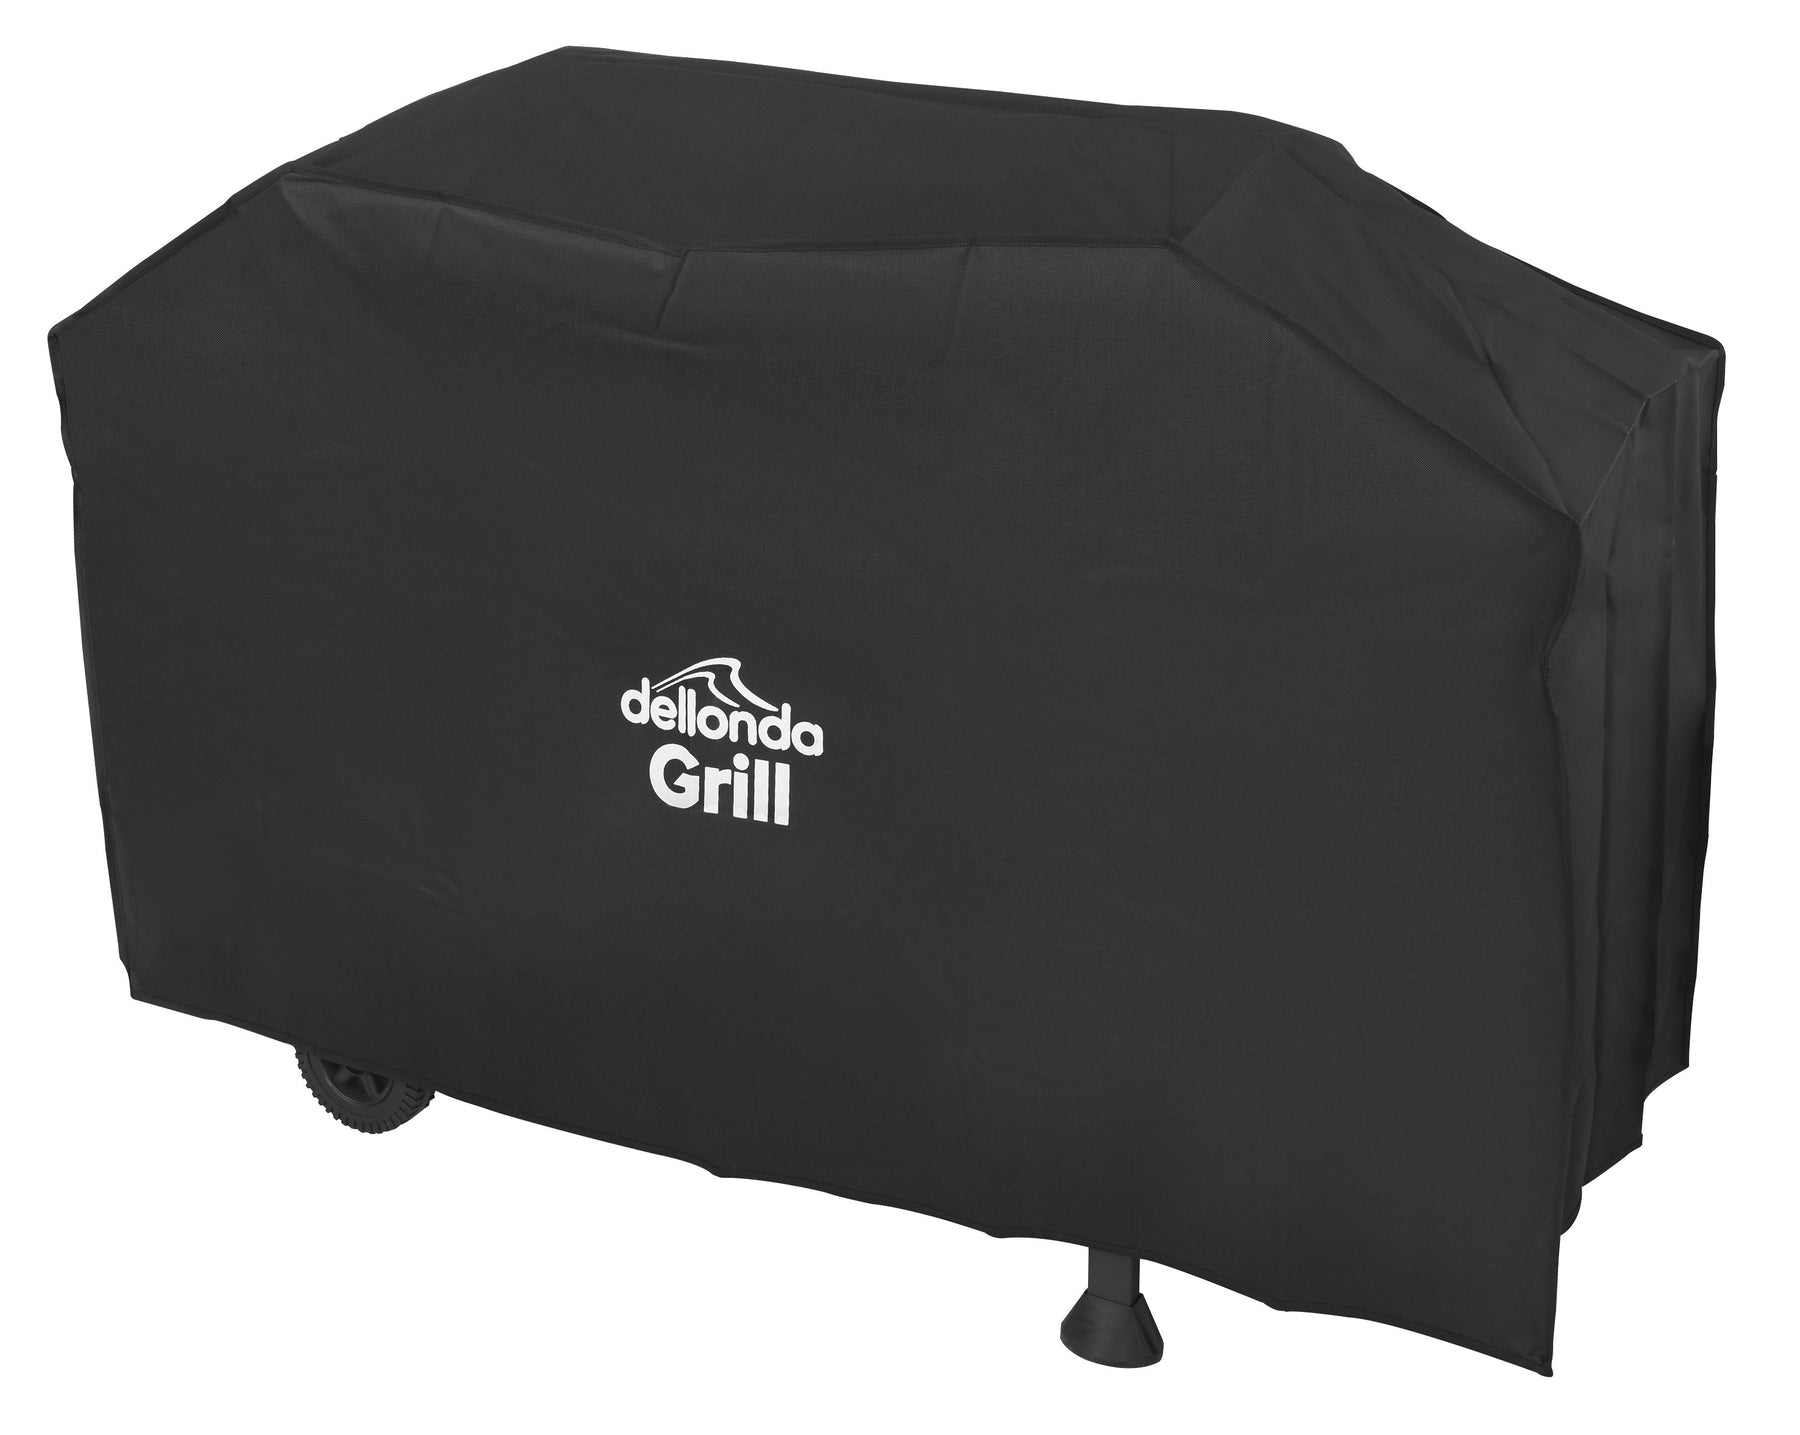 DG20 - Universal PVC BBQ Cover for Barbecues, Heavy-Duty & Waterproof - 1370mm x 920mm (W x H)